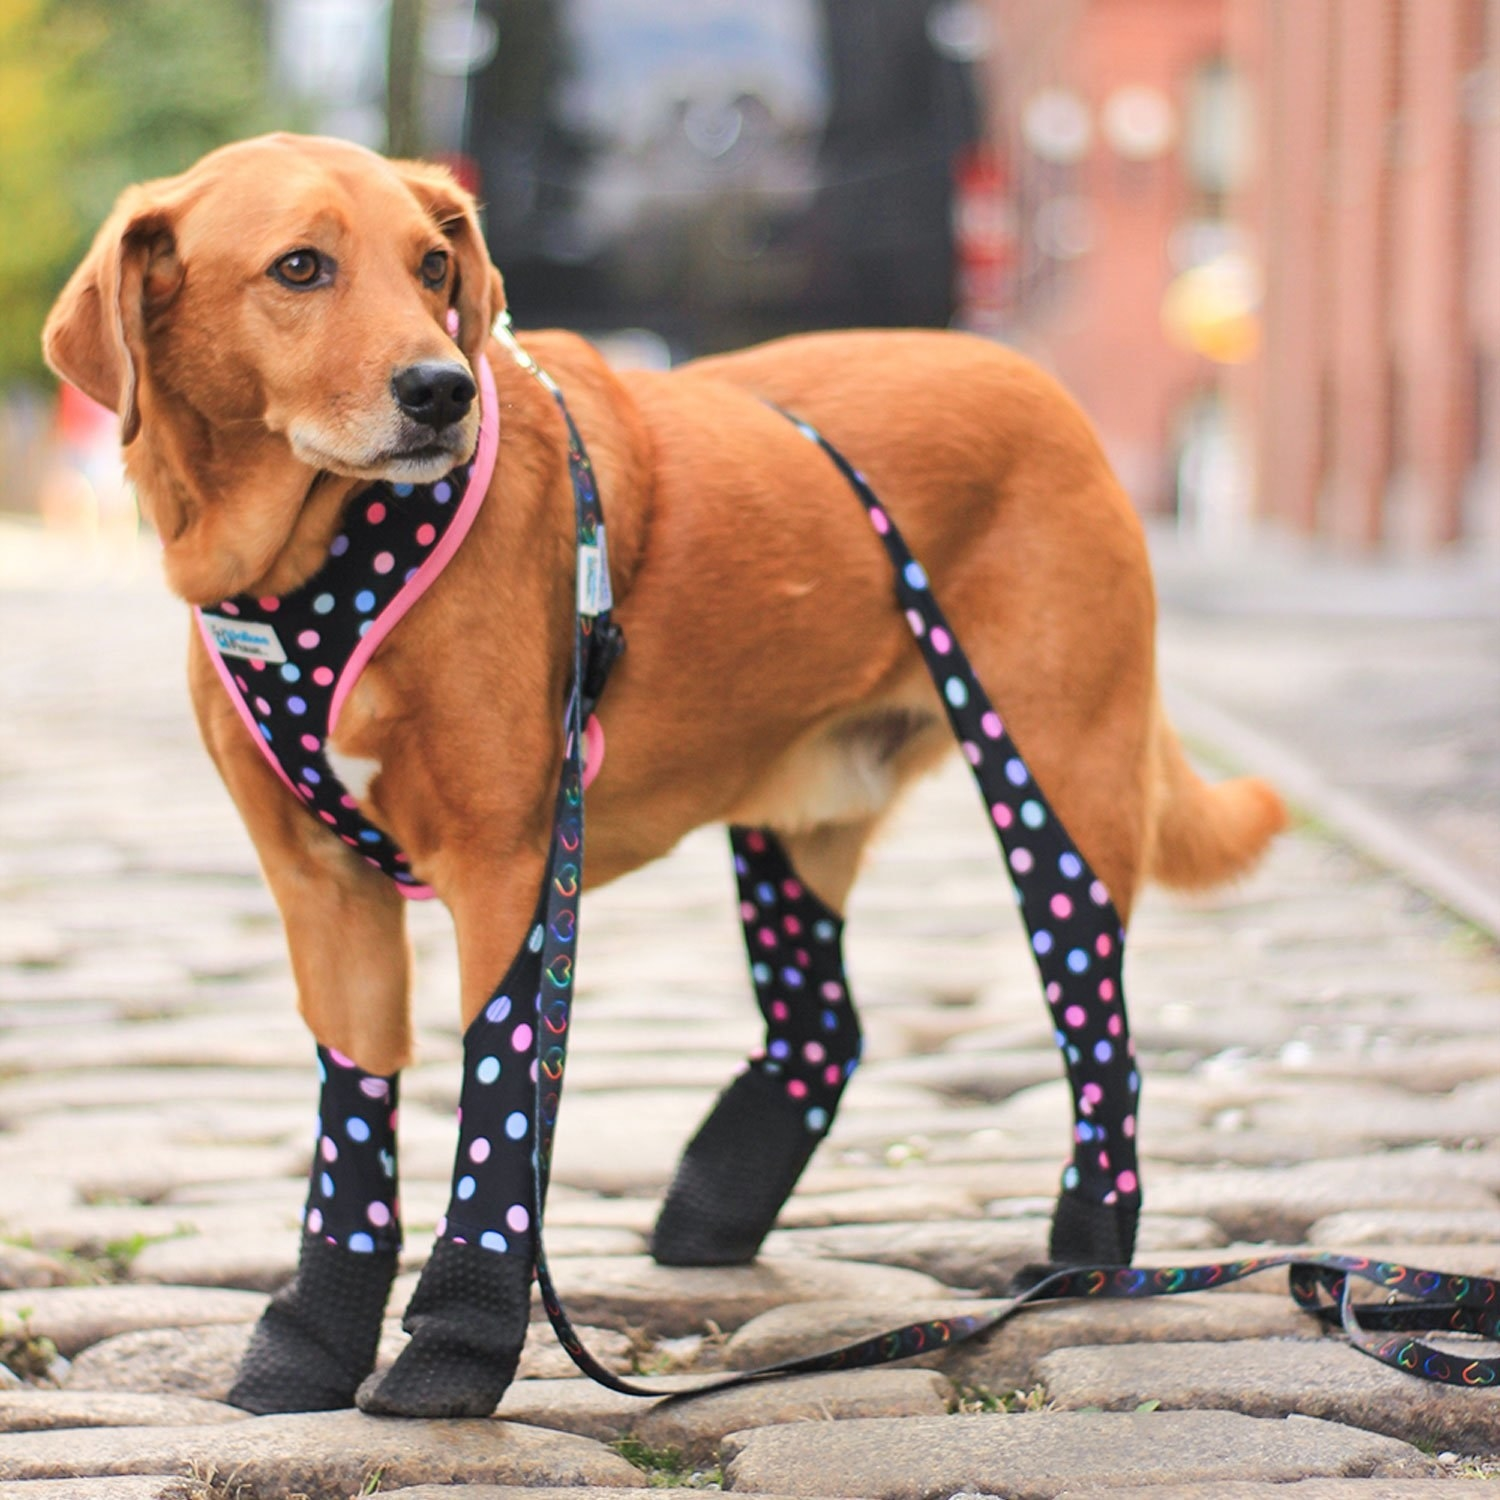 a dog wearing the confetti-patterned dog leggings on cobblestone pavement